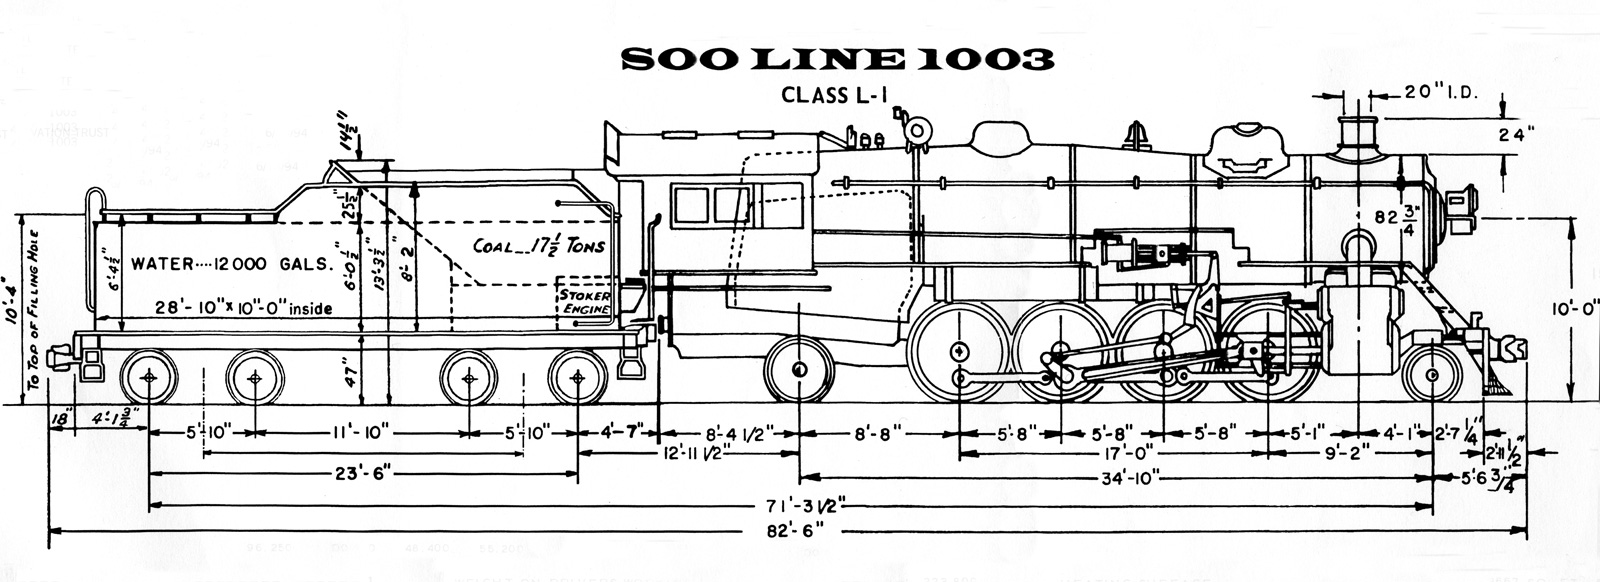 Soo Line 1003 – Locomotive Engine Diagram Simple